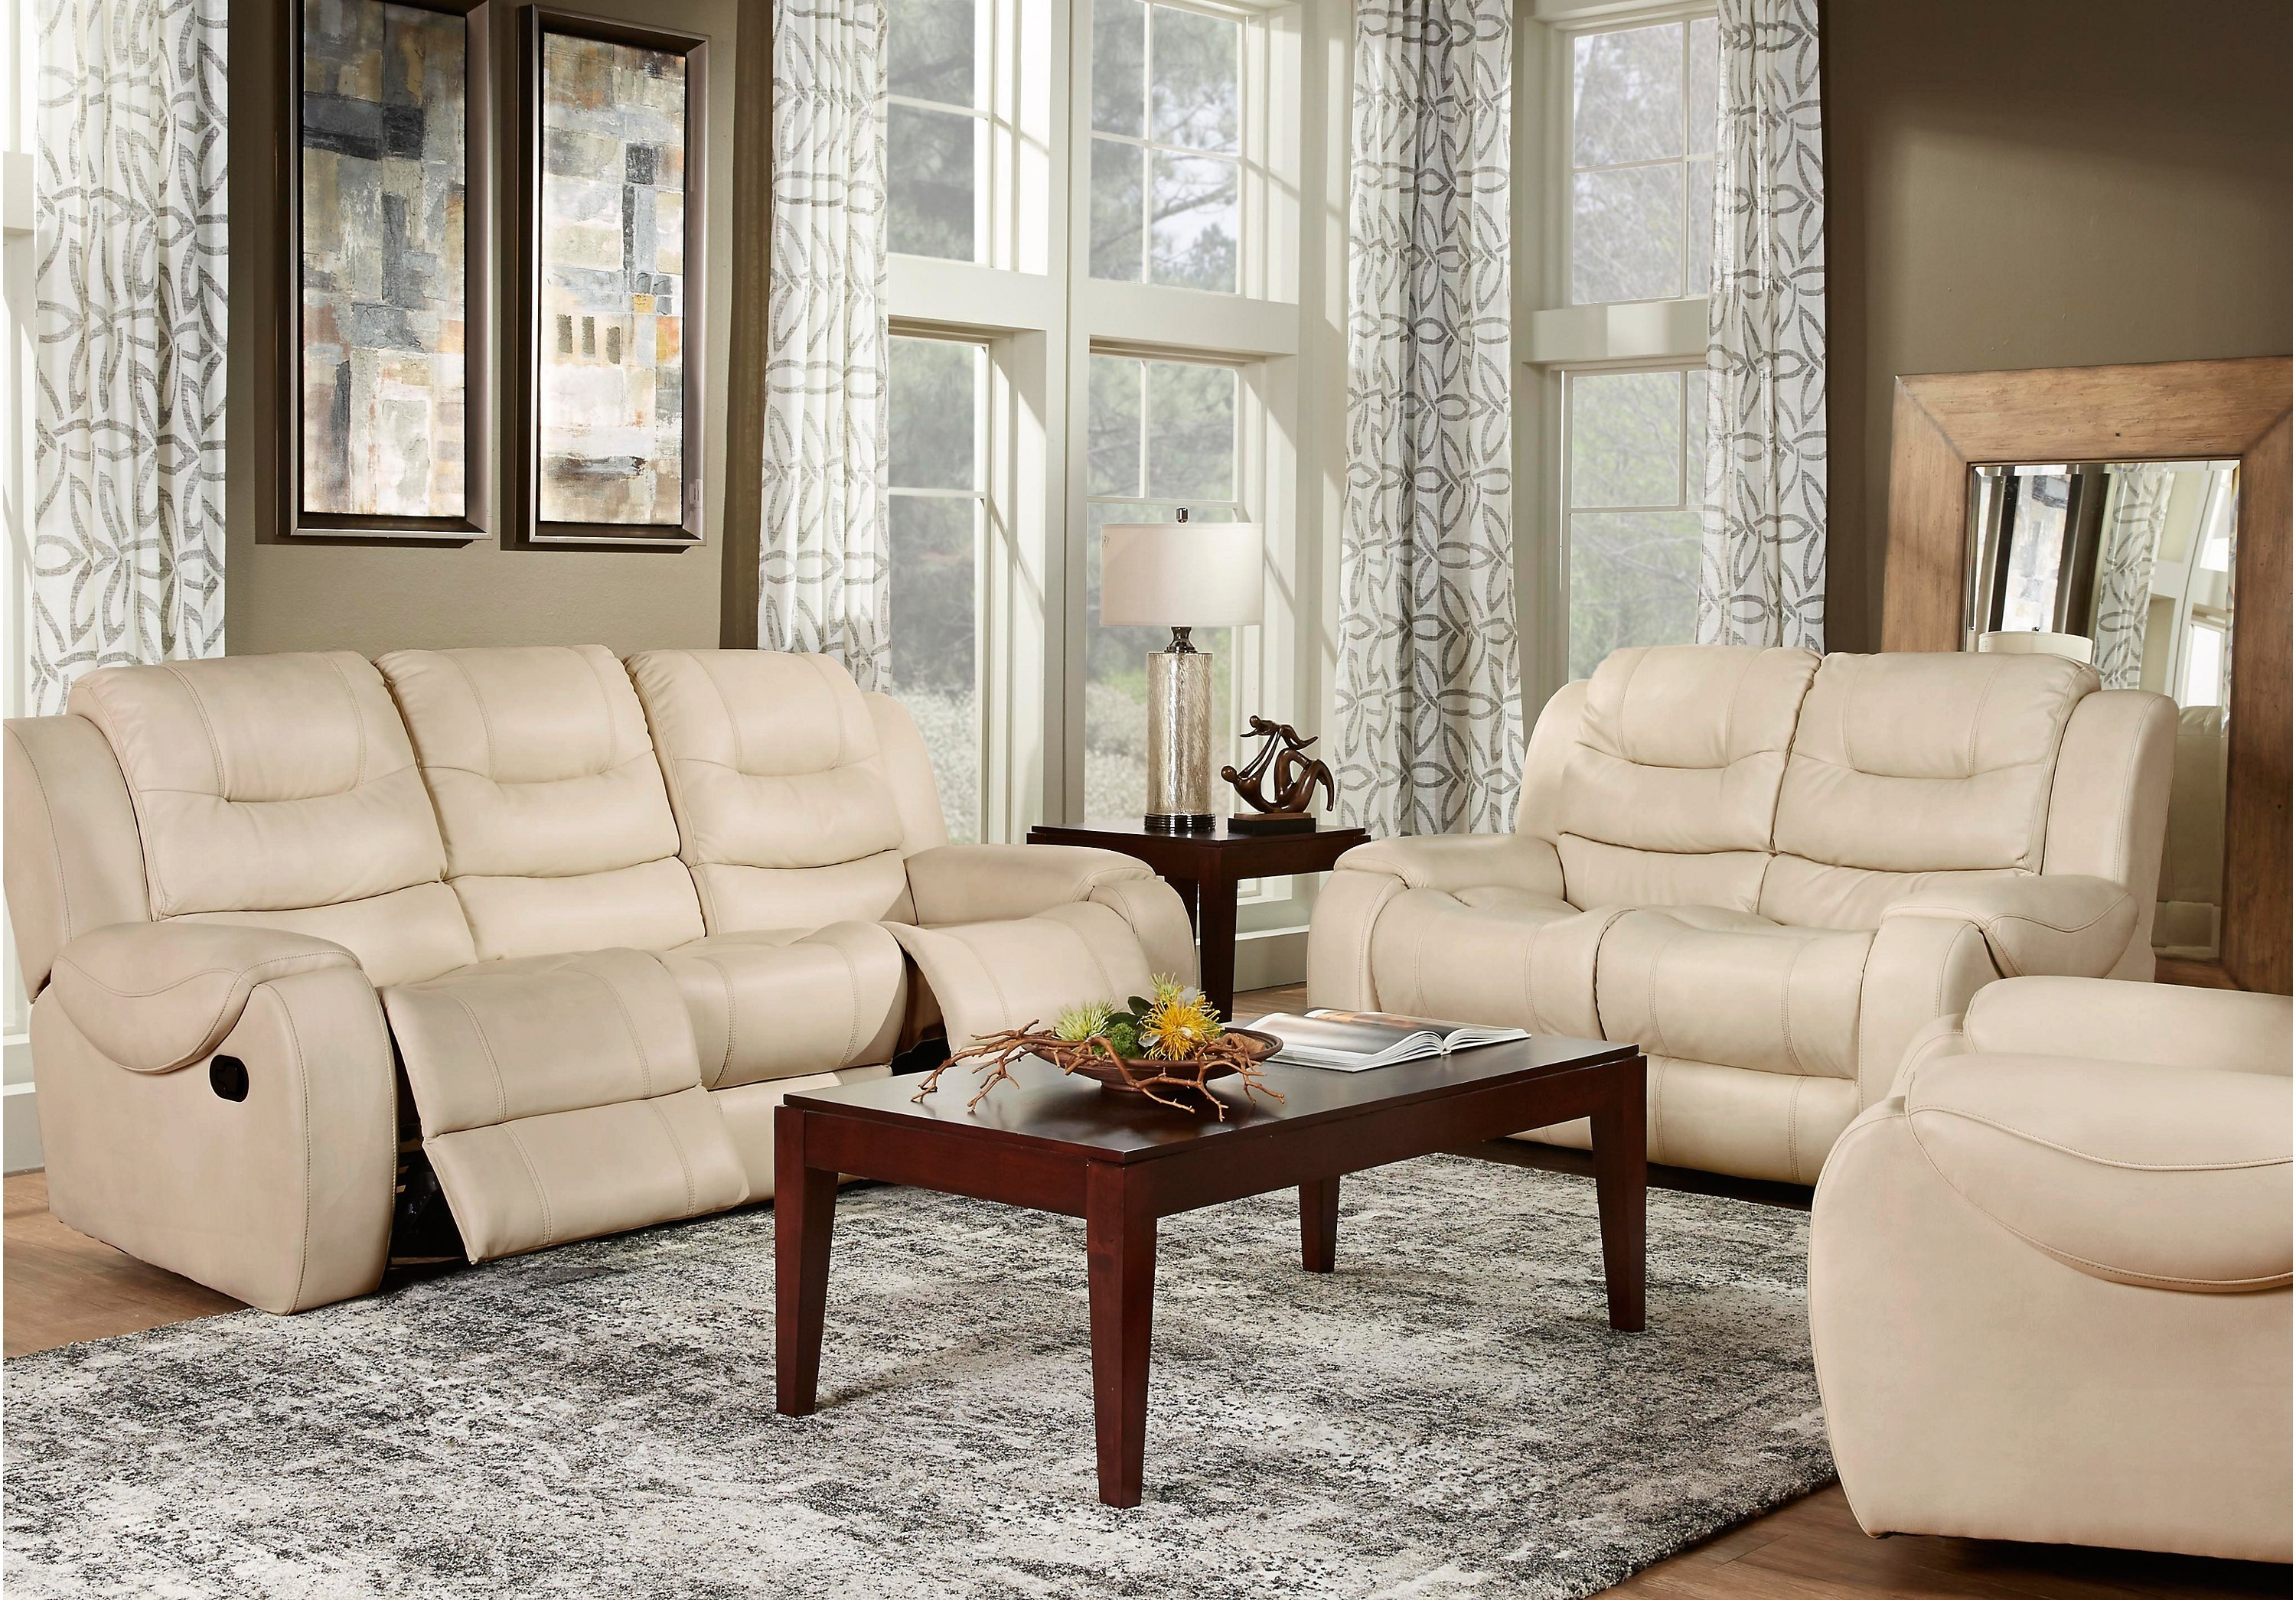 Popular Sectional Sofas At Rooms To Go For Baycliffe Living Room Set Rooms To Go Furniture Luxuriously Supple (View 9 of 15)